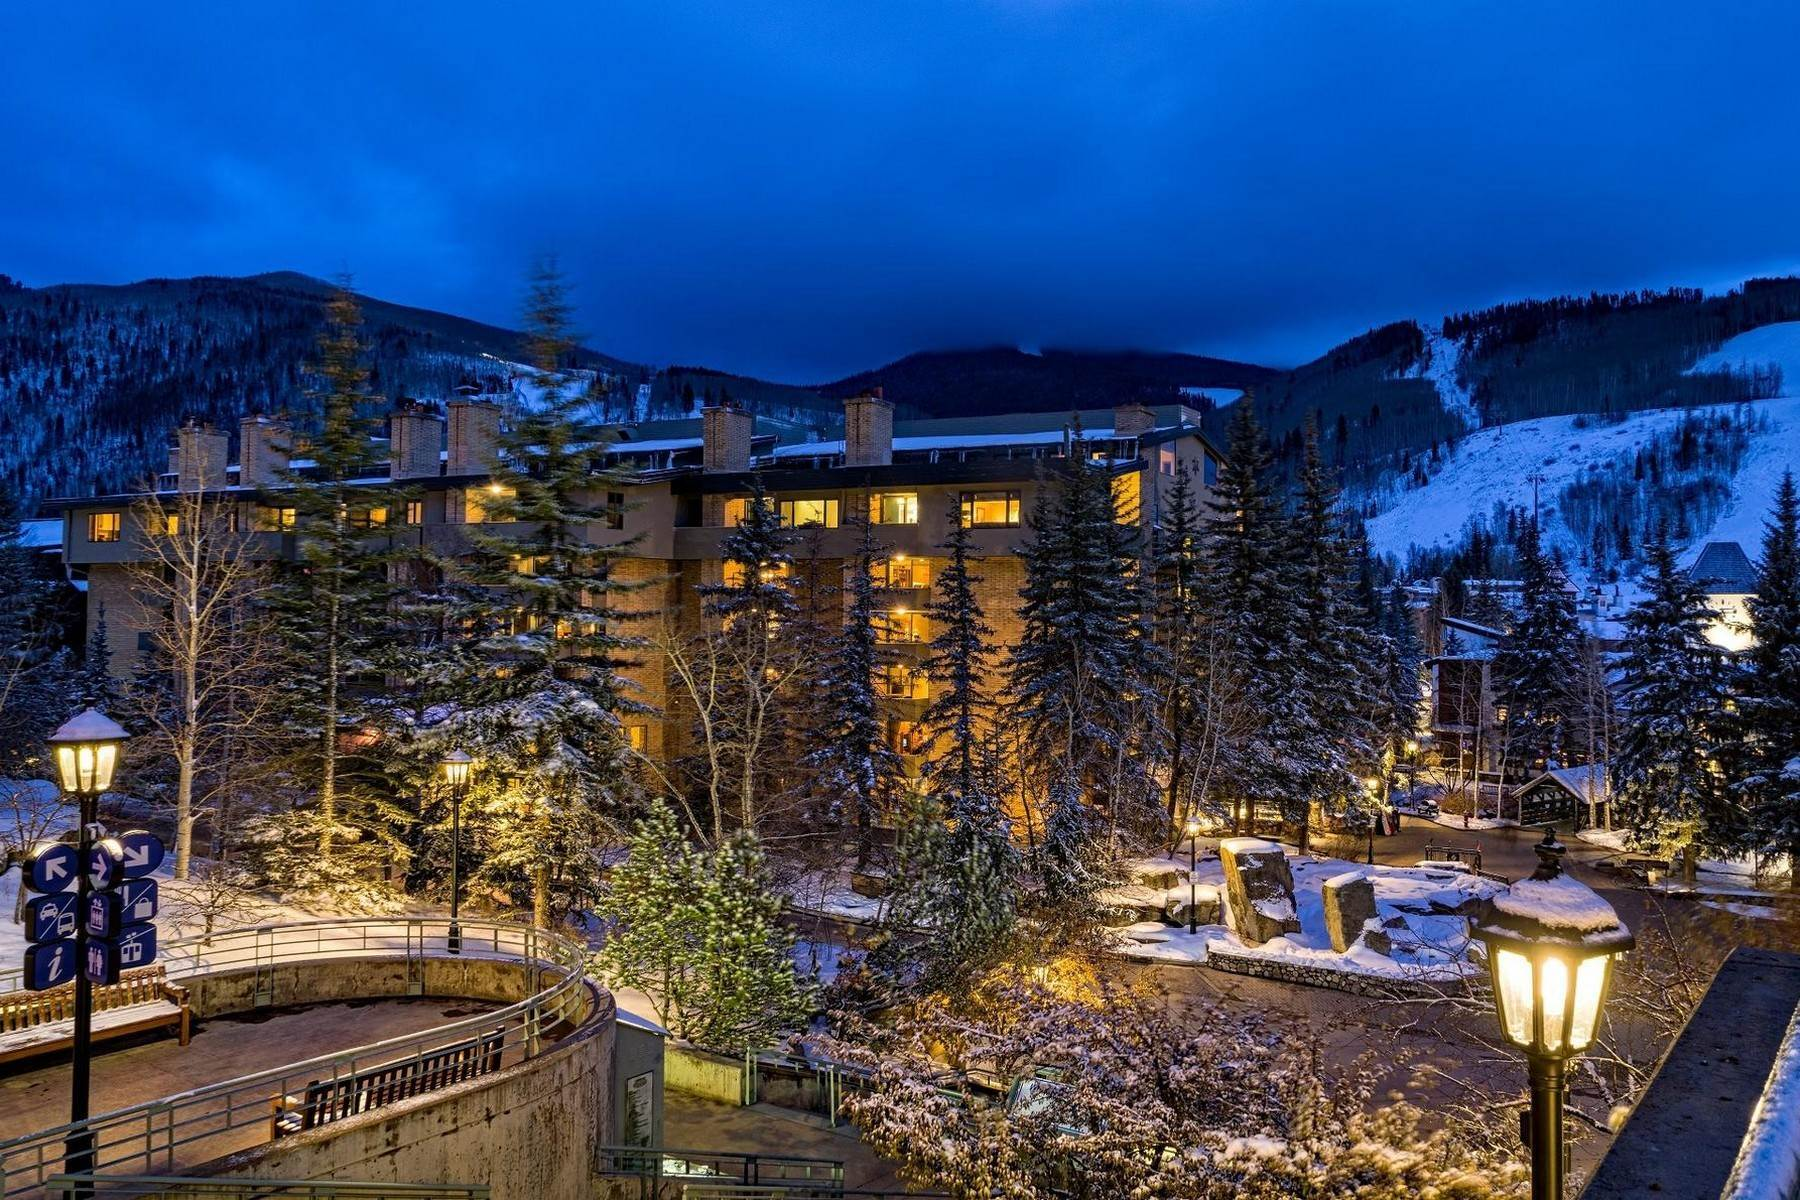 Property for Active at Mountain Haus 685 292 East Meadow Drive, #685 Vail, Colorado 81657 United States